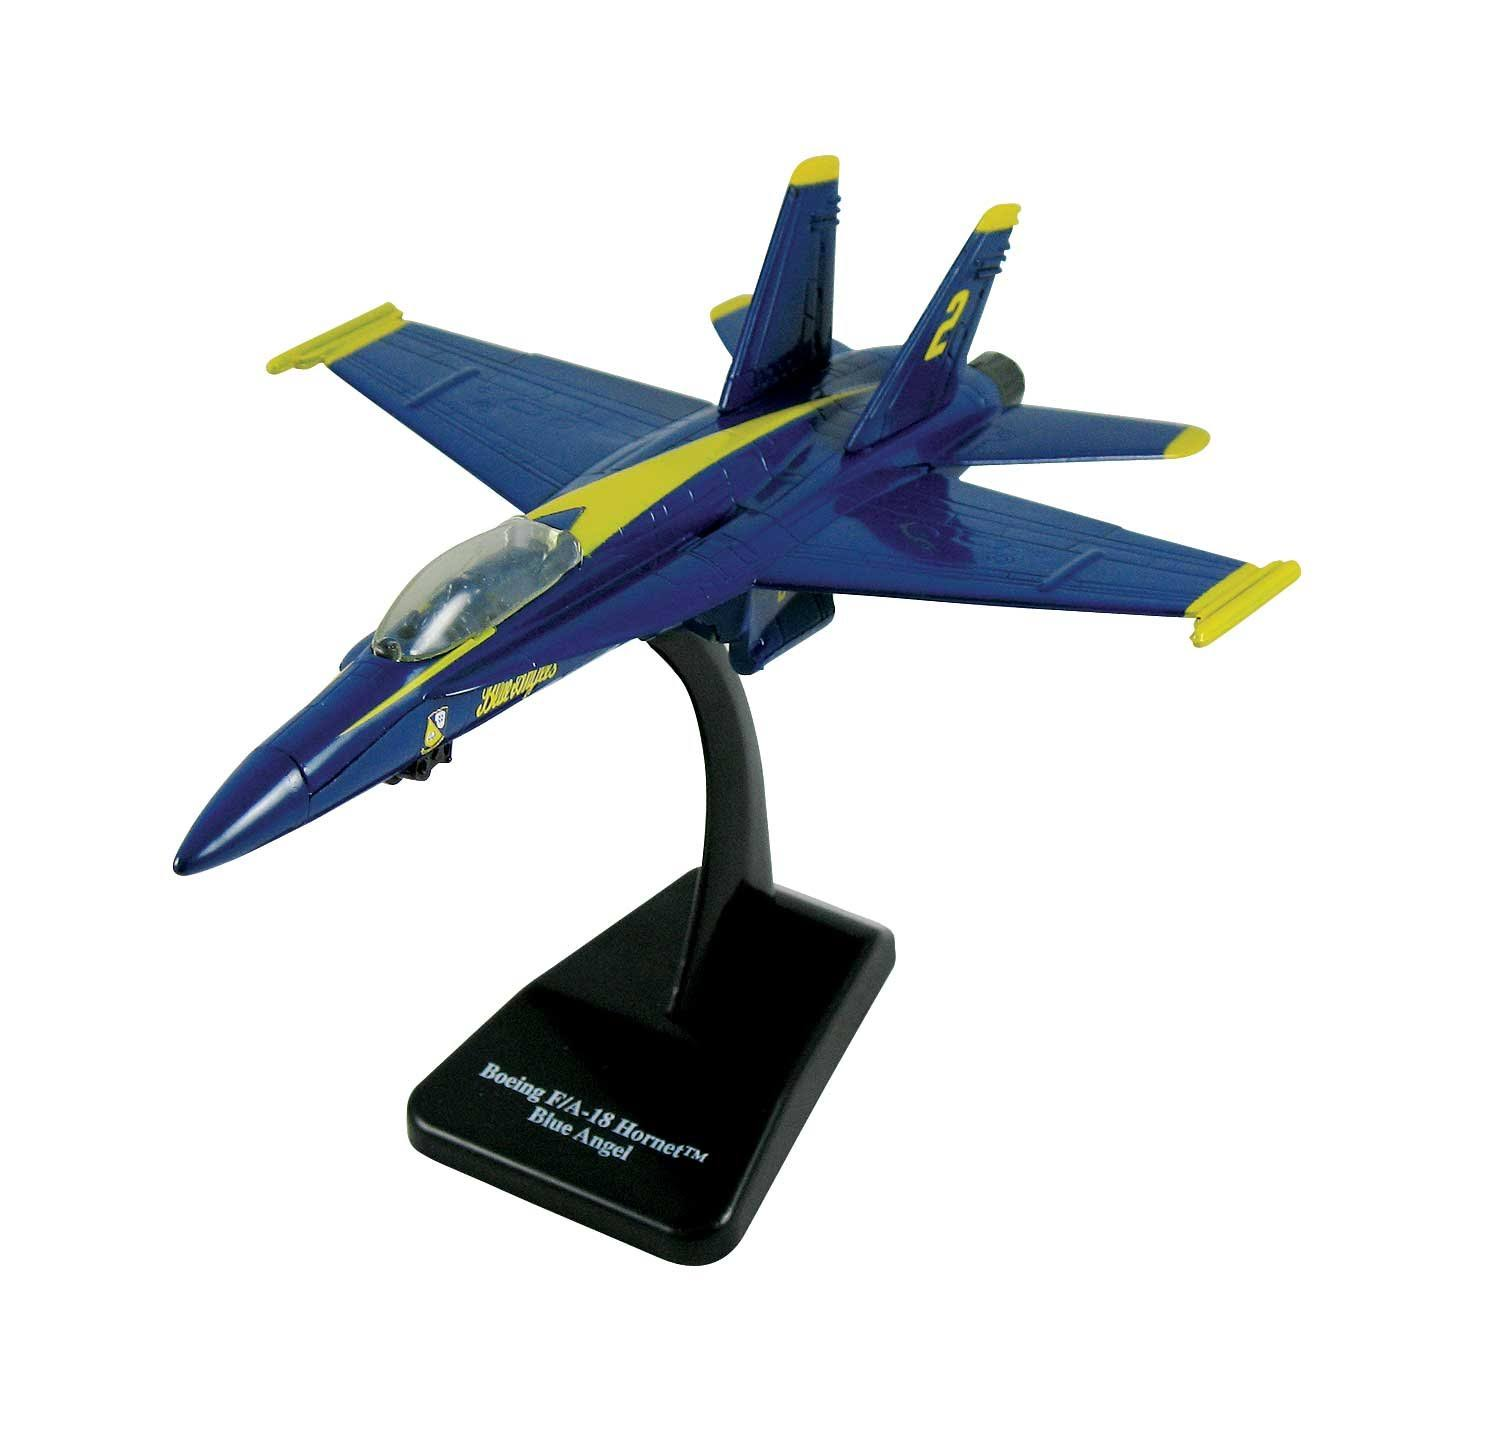 Smithsonian FA-18 Hornet Blue Angels EZ Build Model Kit - 1/72 Scale